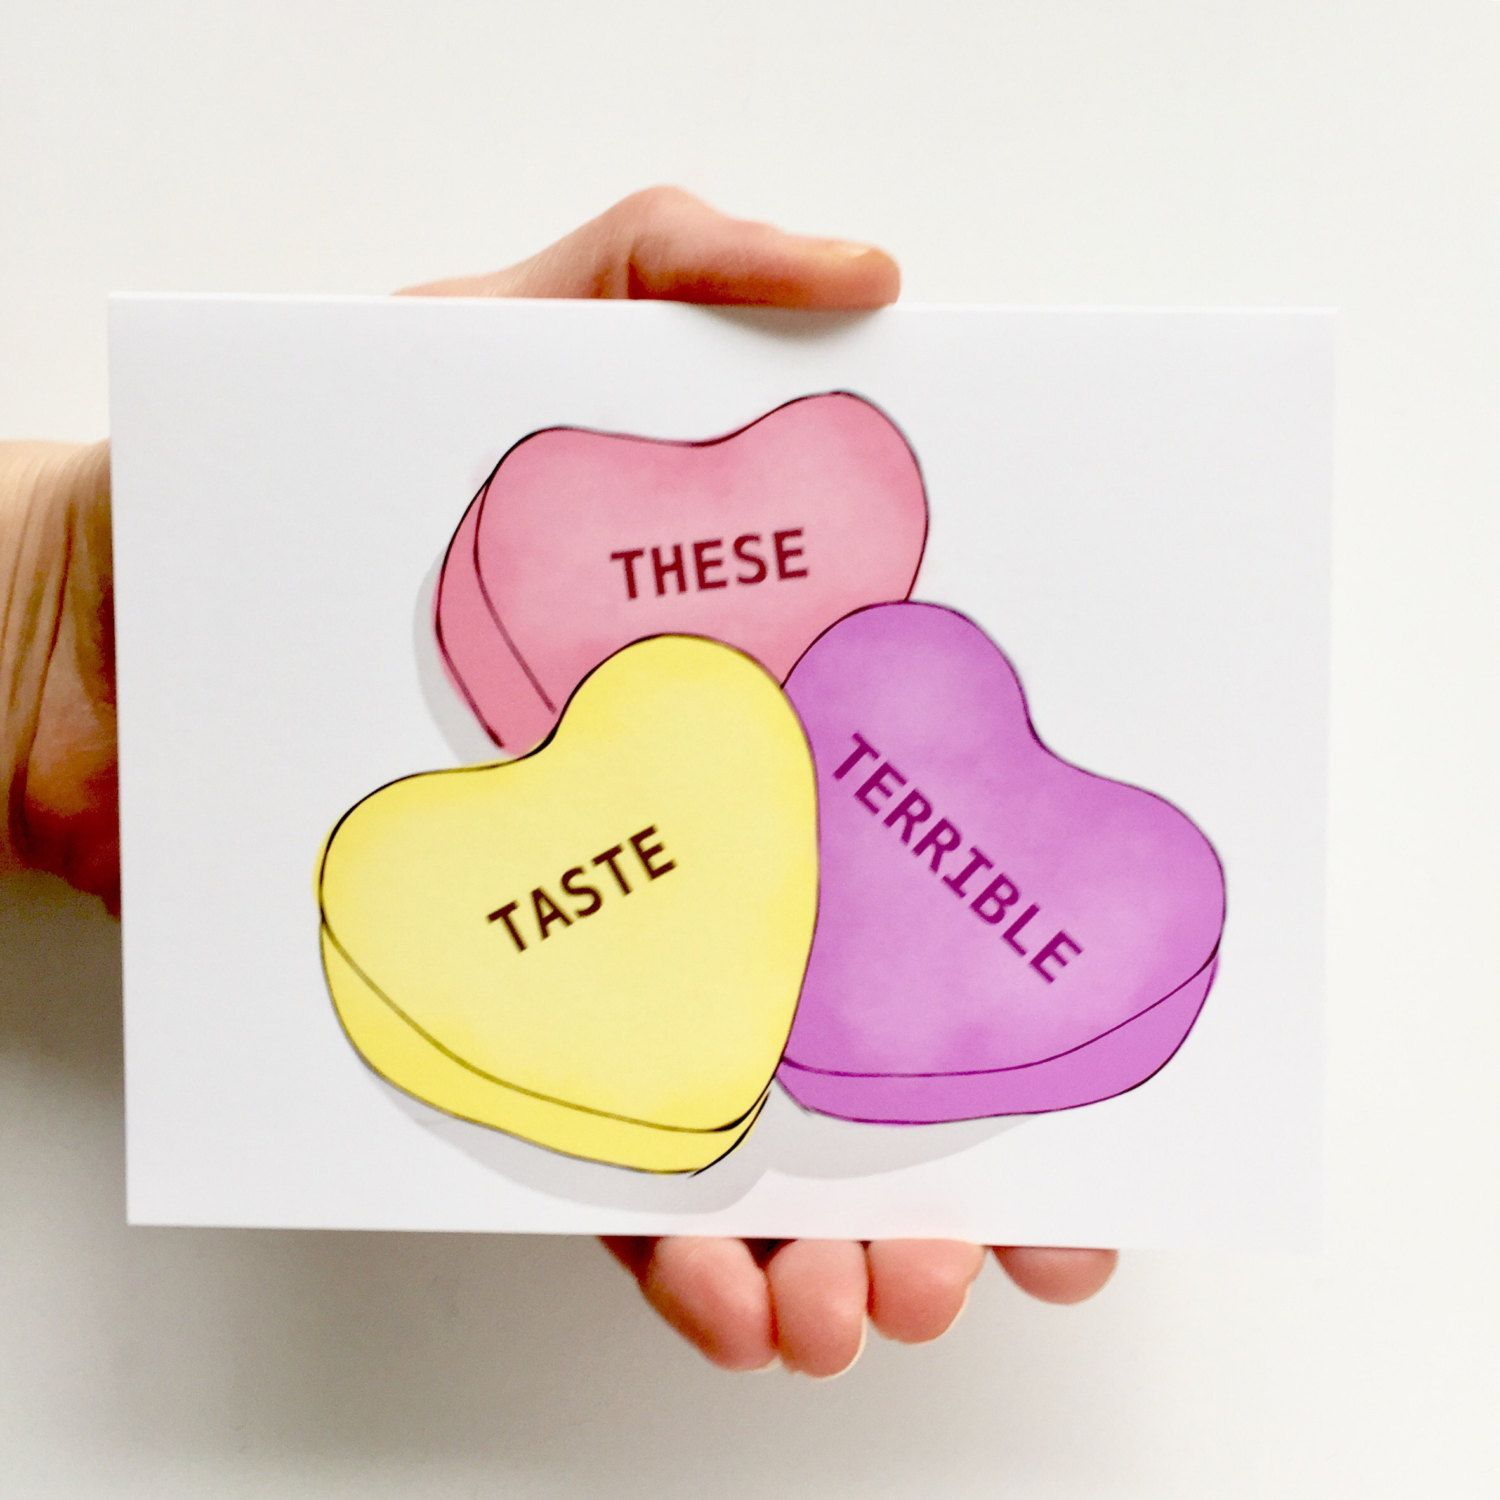 Candy Hearts These Taste Terrible Funny Valentines Card Funny Cards For Valentines Day Funniest Valentines Cards Funny Valentines Cards Anti Valentines Day